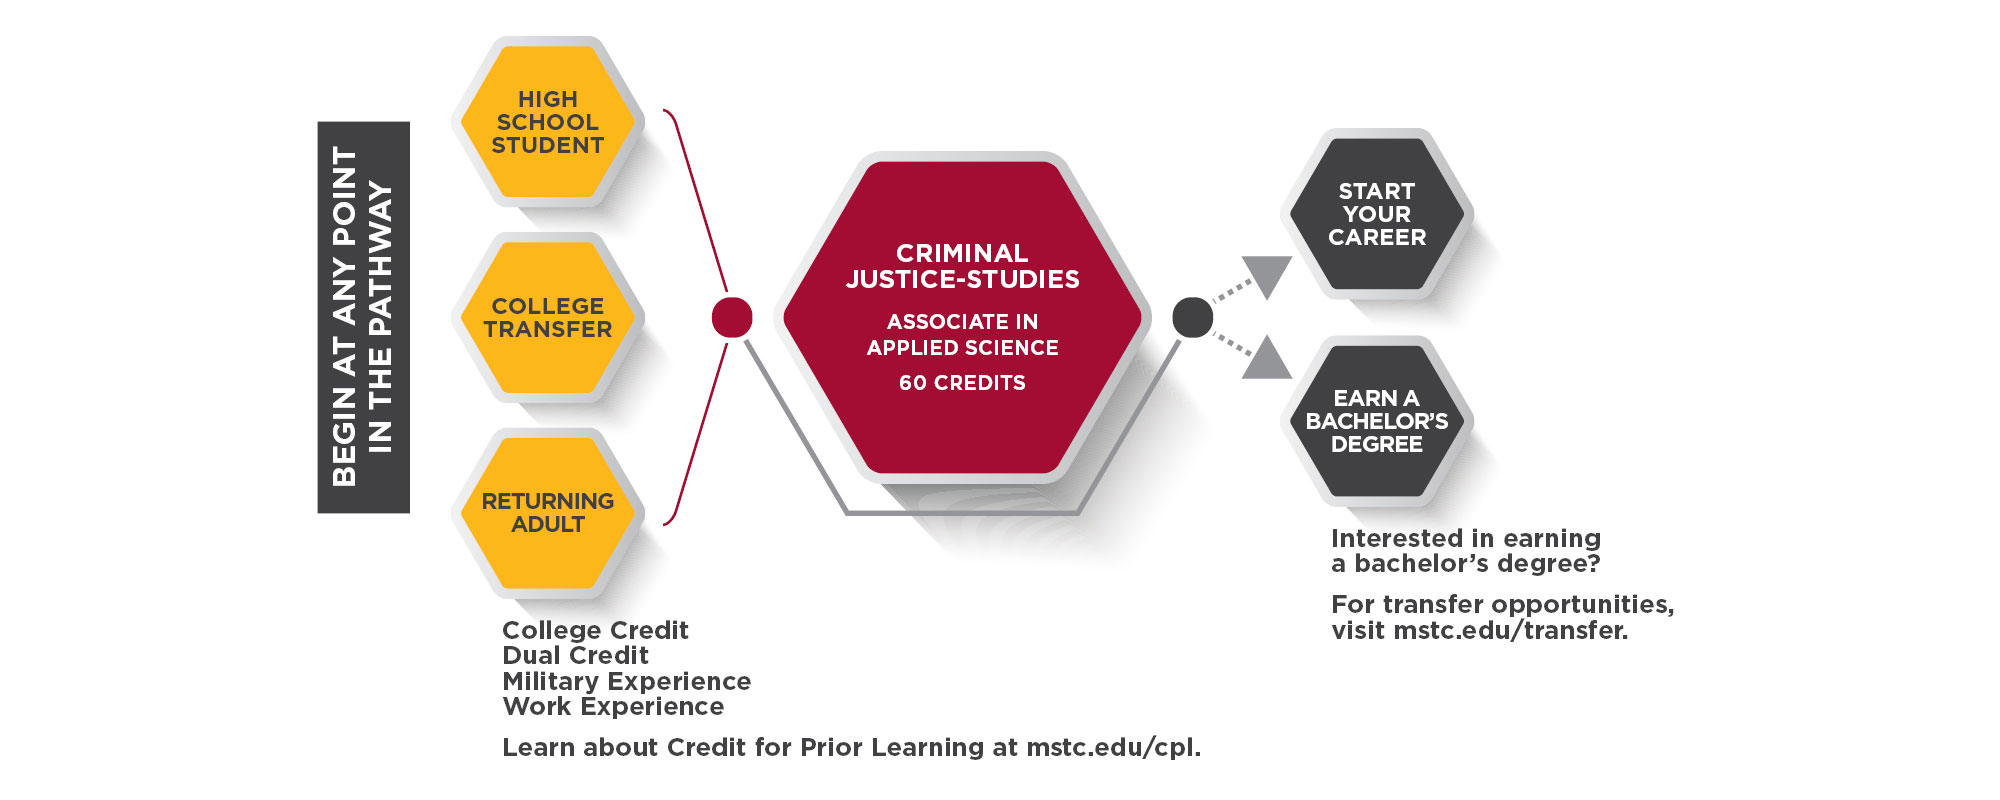 Criminal Justice Studies Pathway Graphic